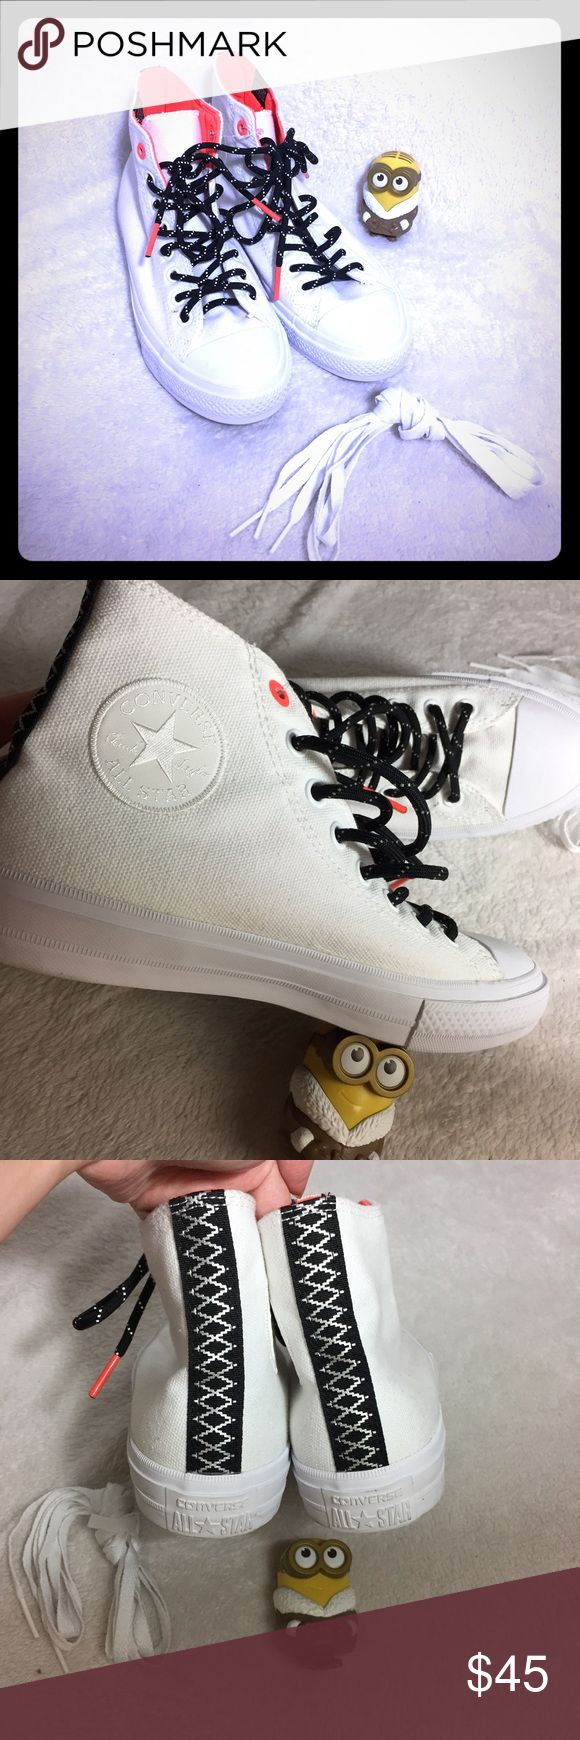 CONVERSE CHUCK TAYLOR ALL STAR II HIGH TOP SNEAKER Brand new without Box CONVERSE CHUCK TAYLOR ALL STAR II HIGH TOP SNEAKER  Color:  White/ Lava/ Gum  Size:  7 M Big Kid/Youth(women's 9)  Retail: $65+tax  ✅Price firm UNLESS bundled ❌NO trade ❌Lowball Offer Will be IGNORED&BLOCKED ⚡️Serious Buyer ONLY!NO DRAMA ⭐️Same/next day shipping ⚠I video record all sales from packing to shipping so we are both protected Converse Shoes Sneakers